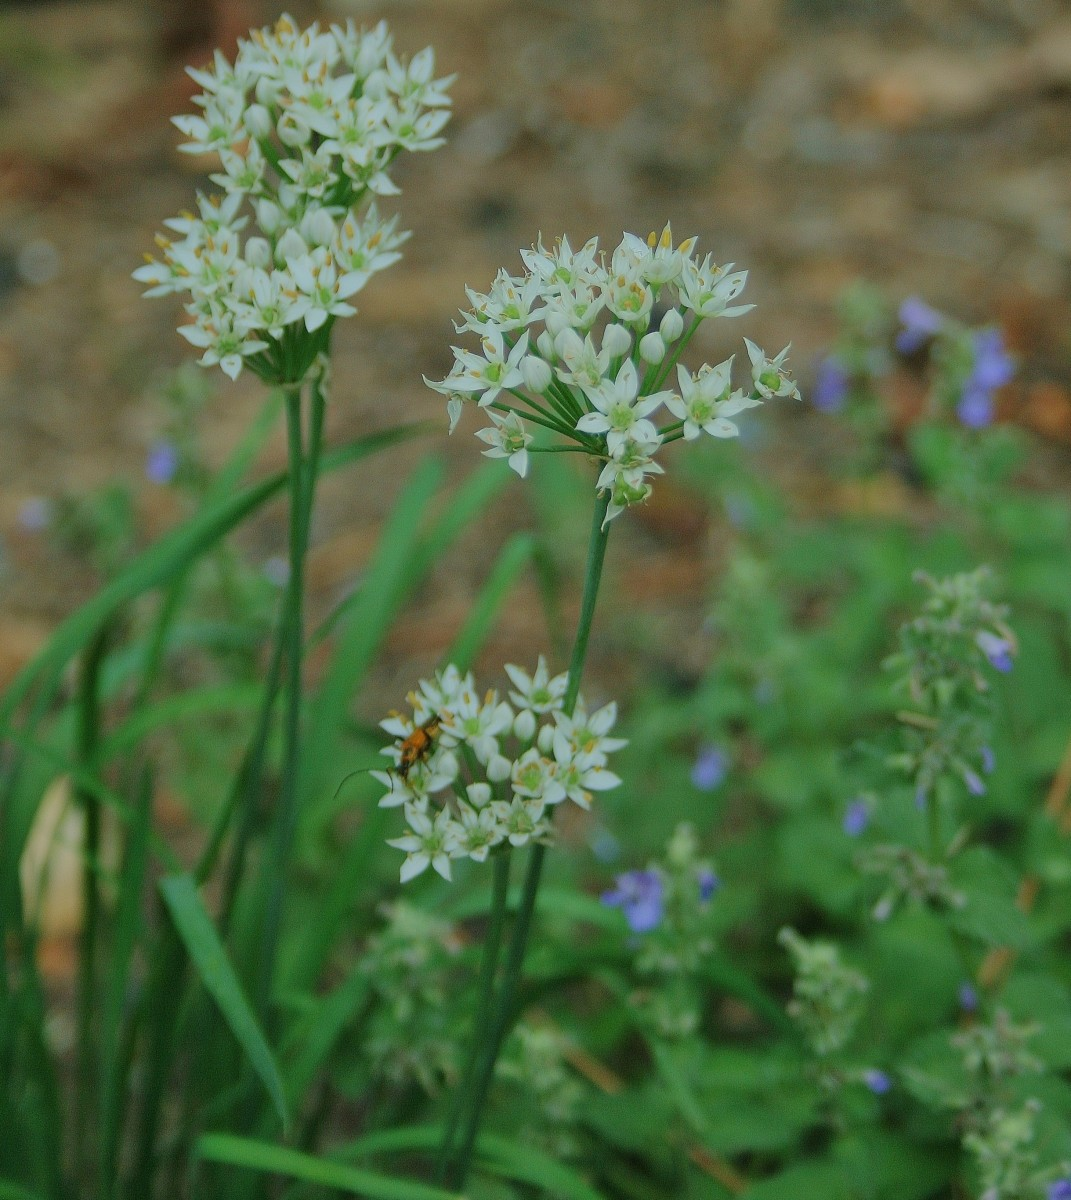 Chives are among the open-pollinated vegetable and herb seeds sold by Sweet Corn Organic Nursery.